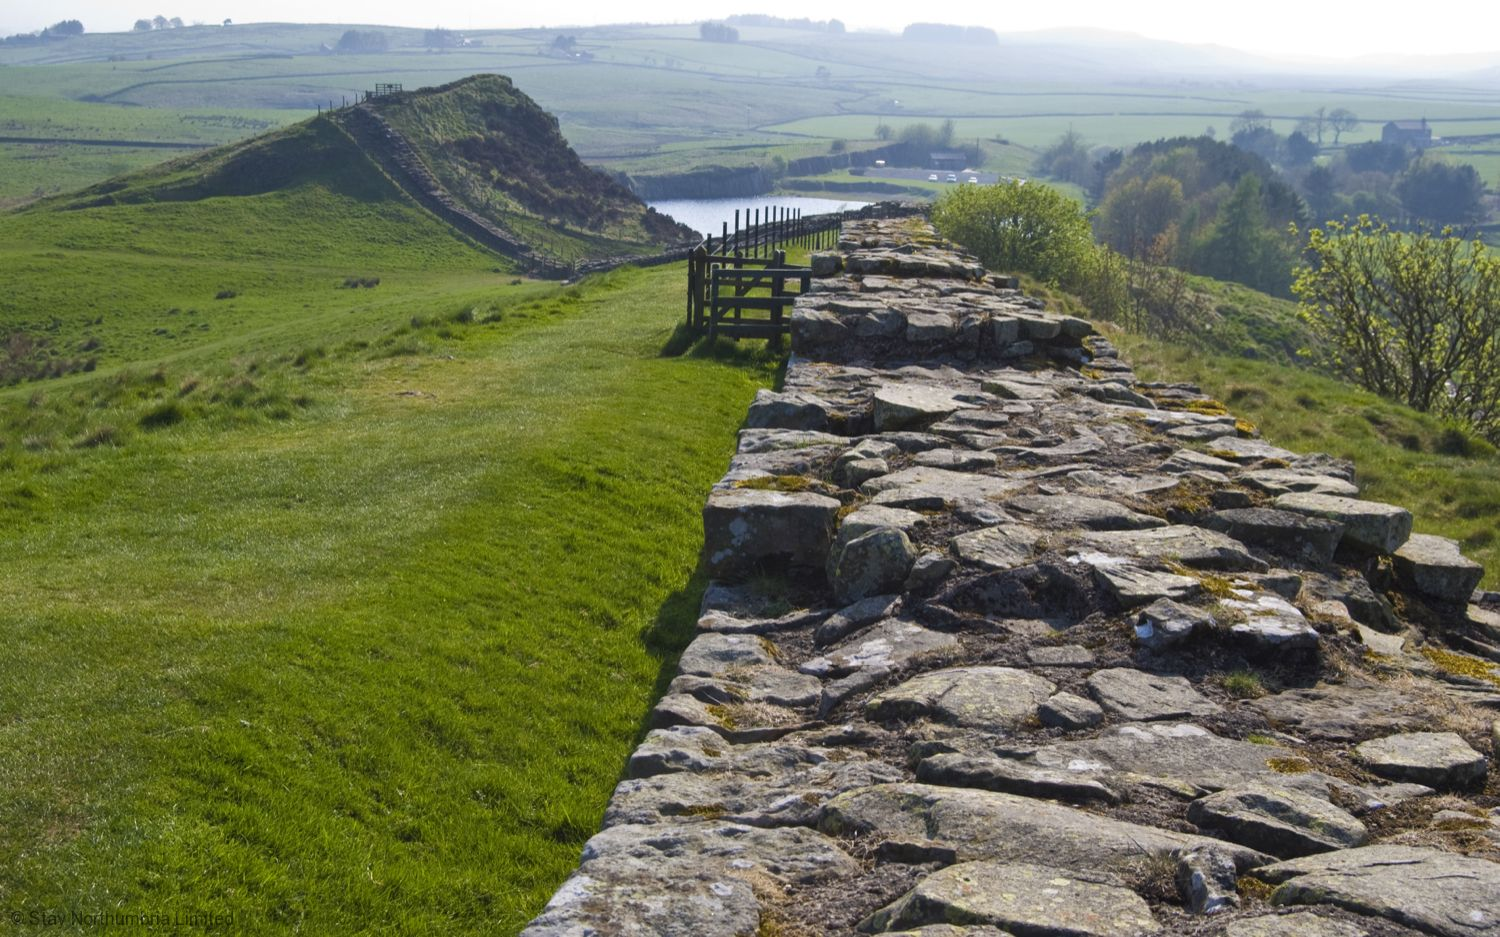 Hadrian's Wall: 15-50 minute drive ( depending on location)